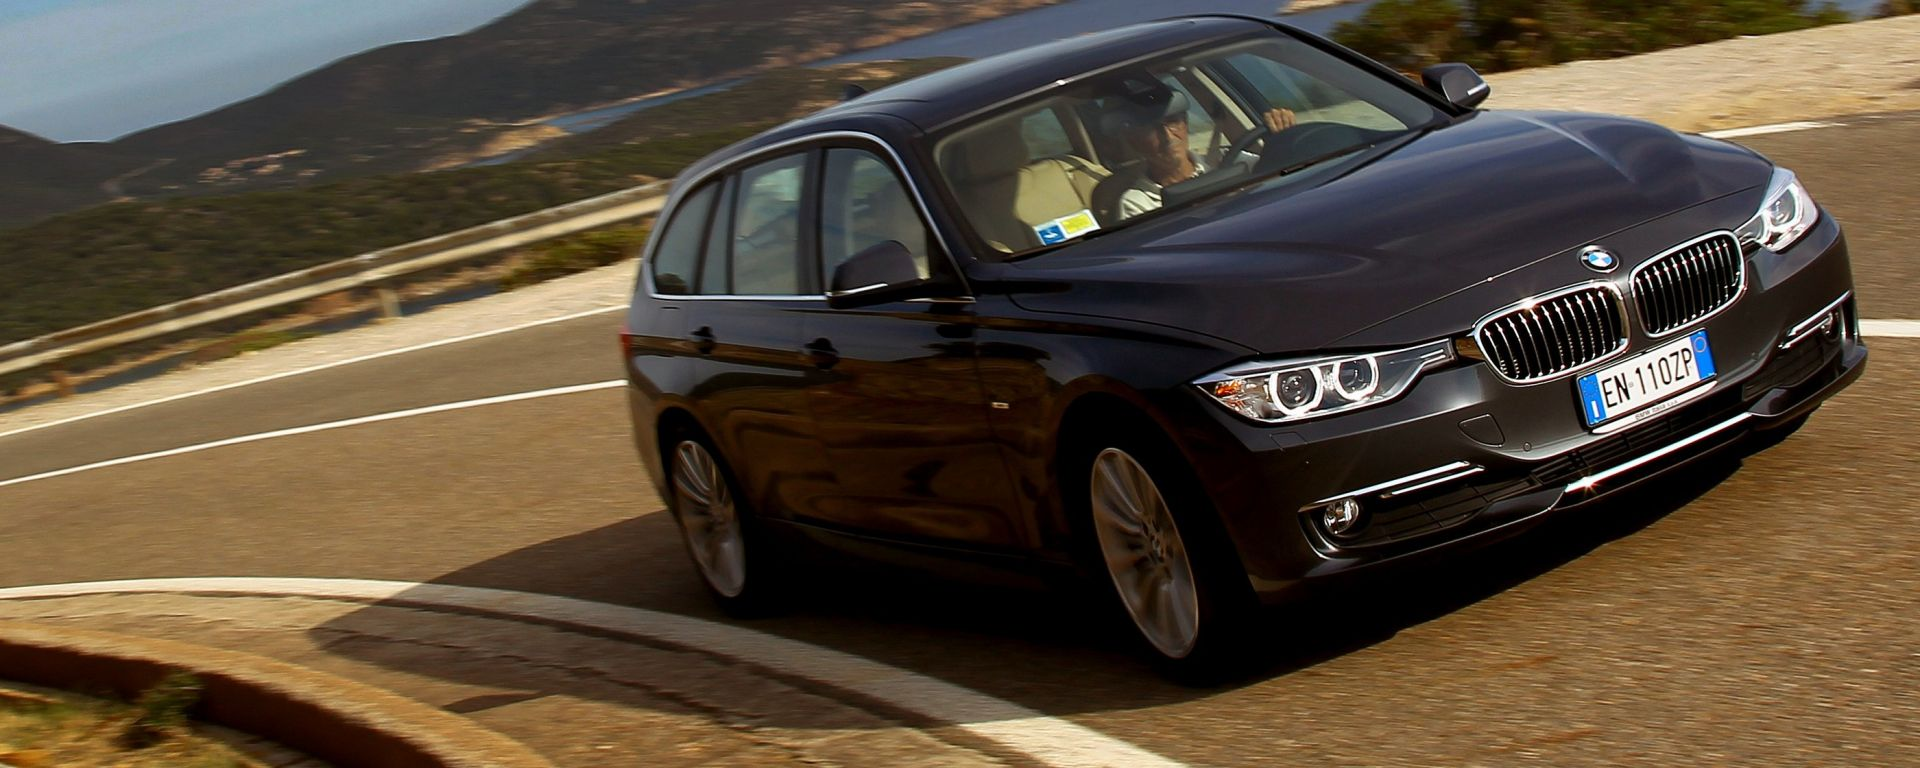 BMW Serie 3 Touring, ora anche in video